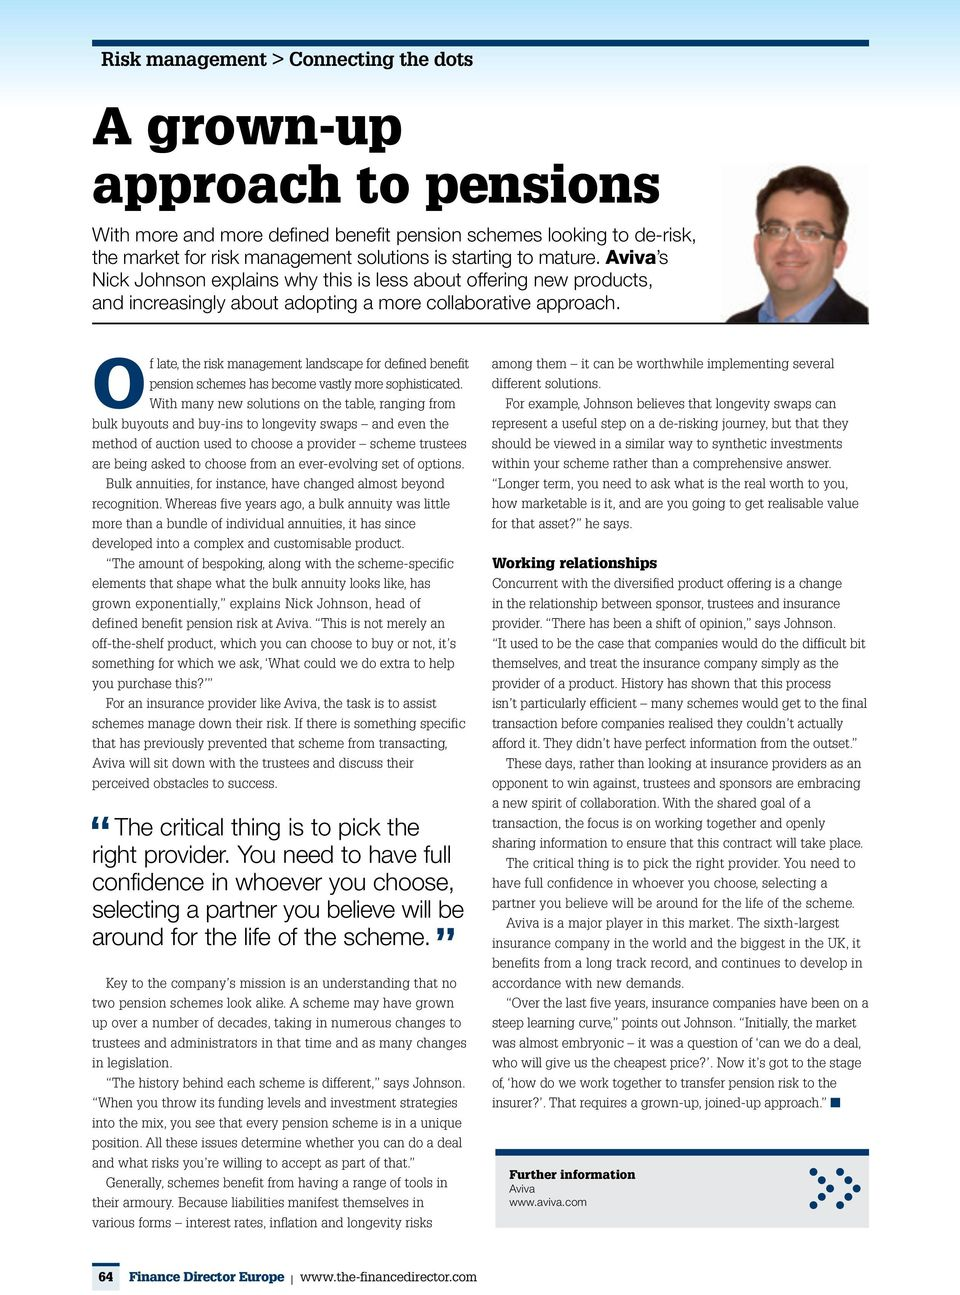 Of late, the risk management landscape for defined benefit pension schemes has become vastly more sophisticated.